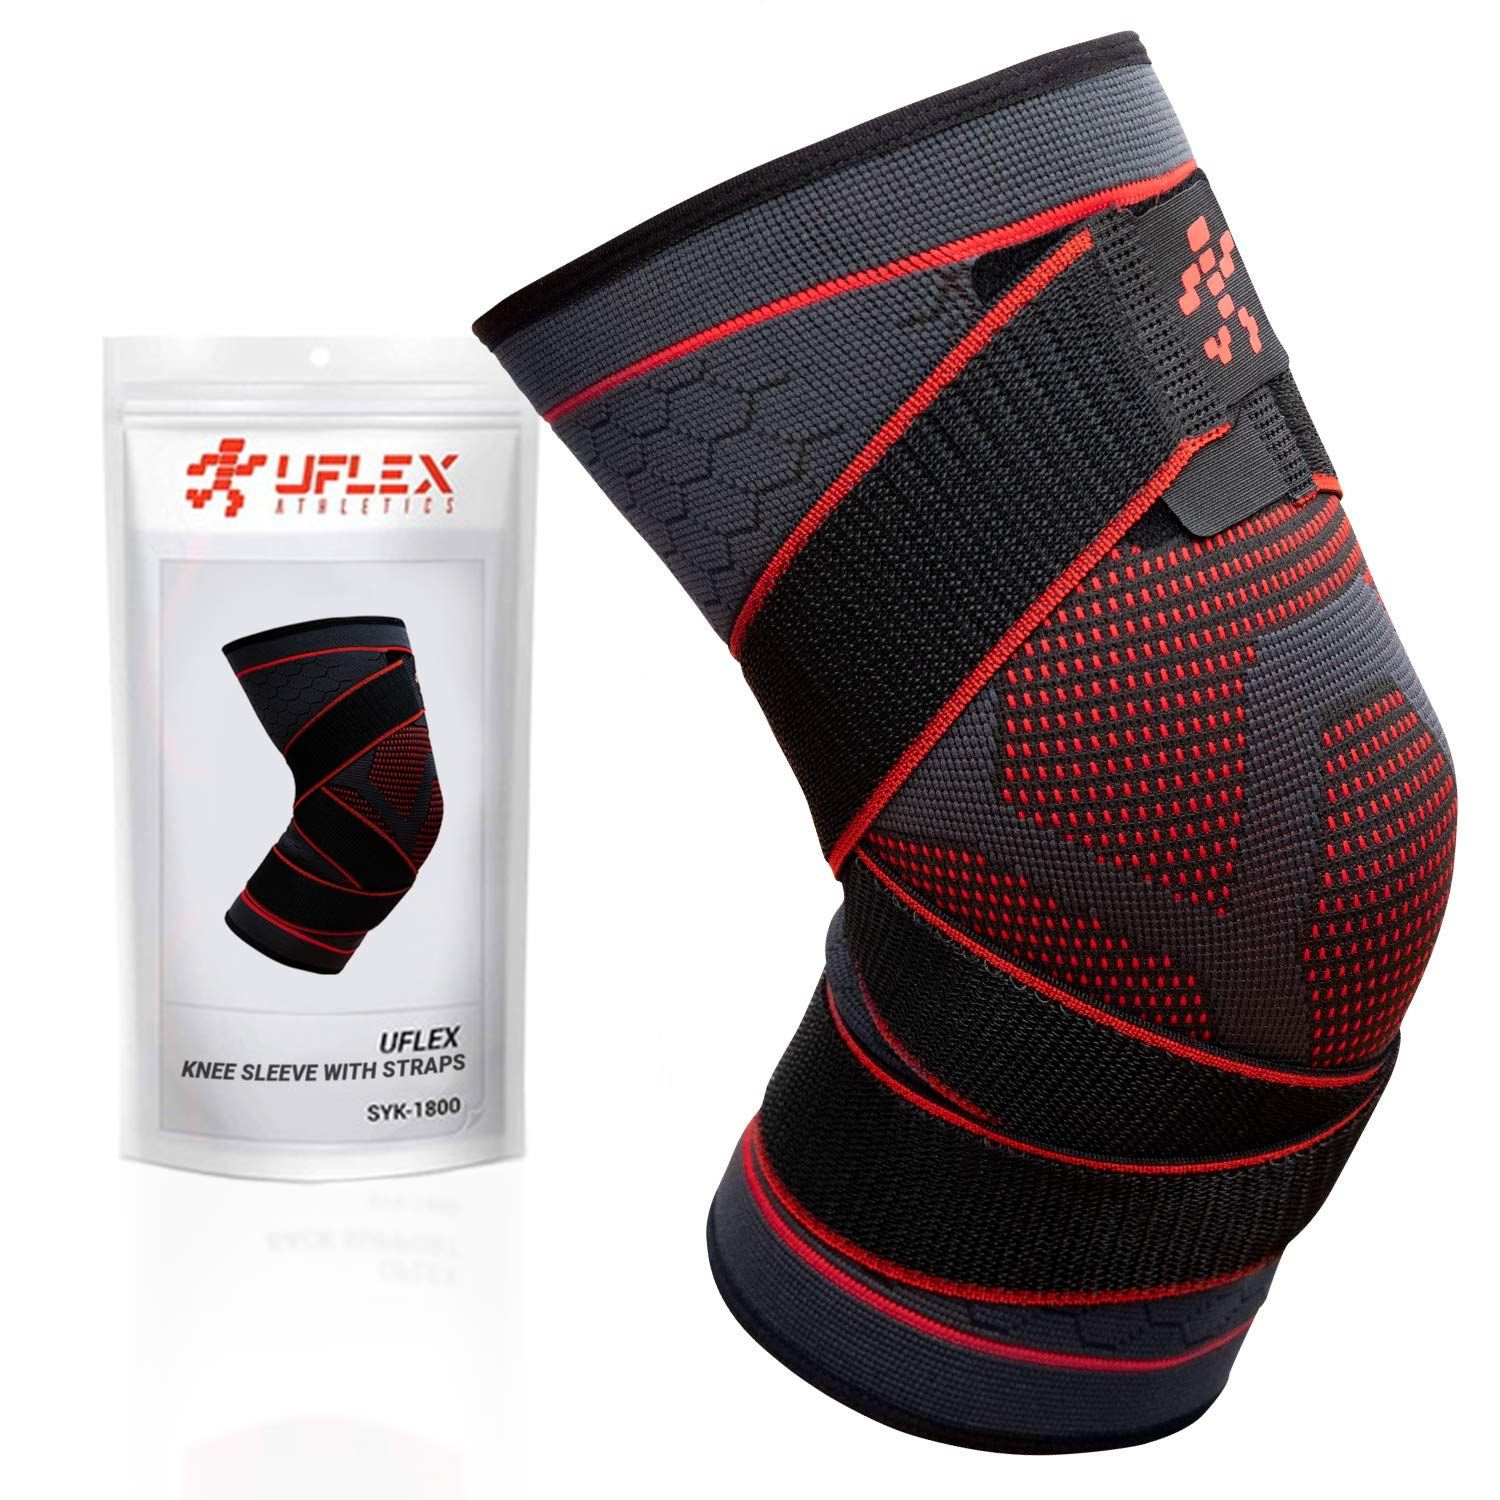 UFlex Athletics Knee Compression Brace for Men and Women - Non Slip Sleeve with Straps for Pain Relief, Meniscus Tear, Sports Safety in Basketball, Tennis - Single Wrap